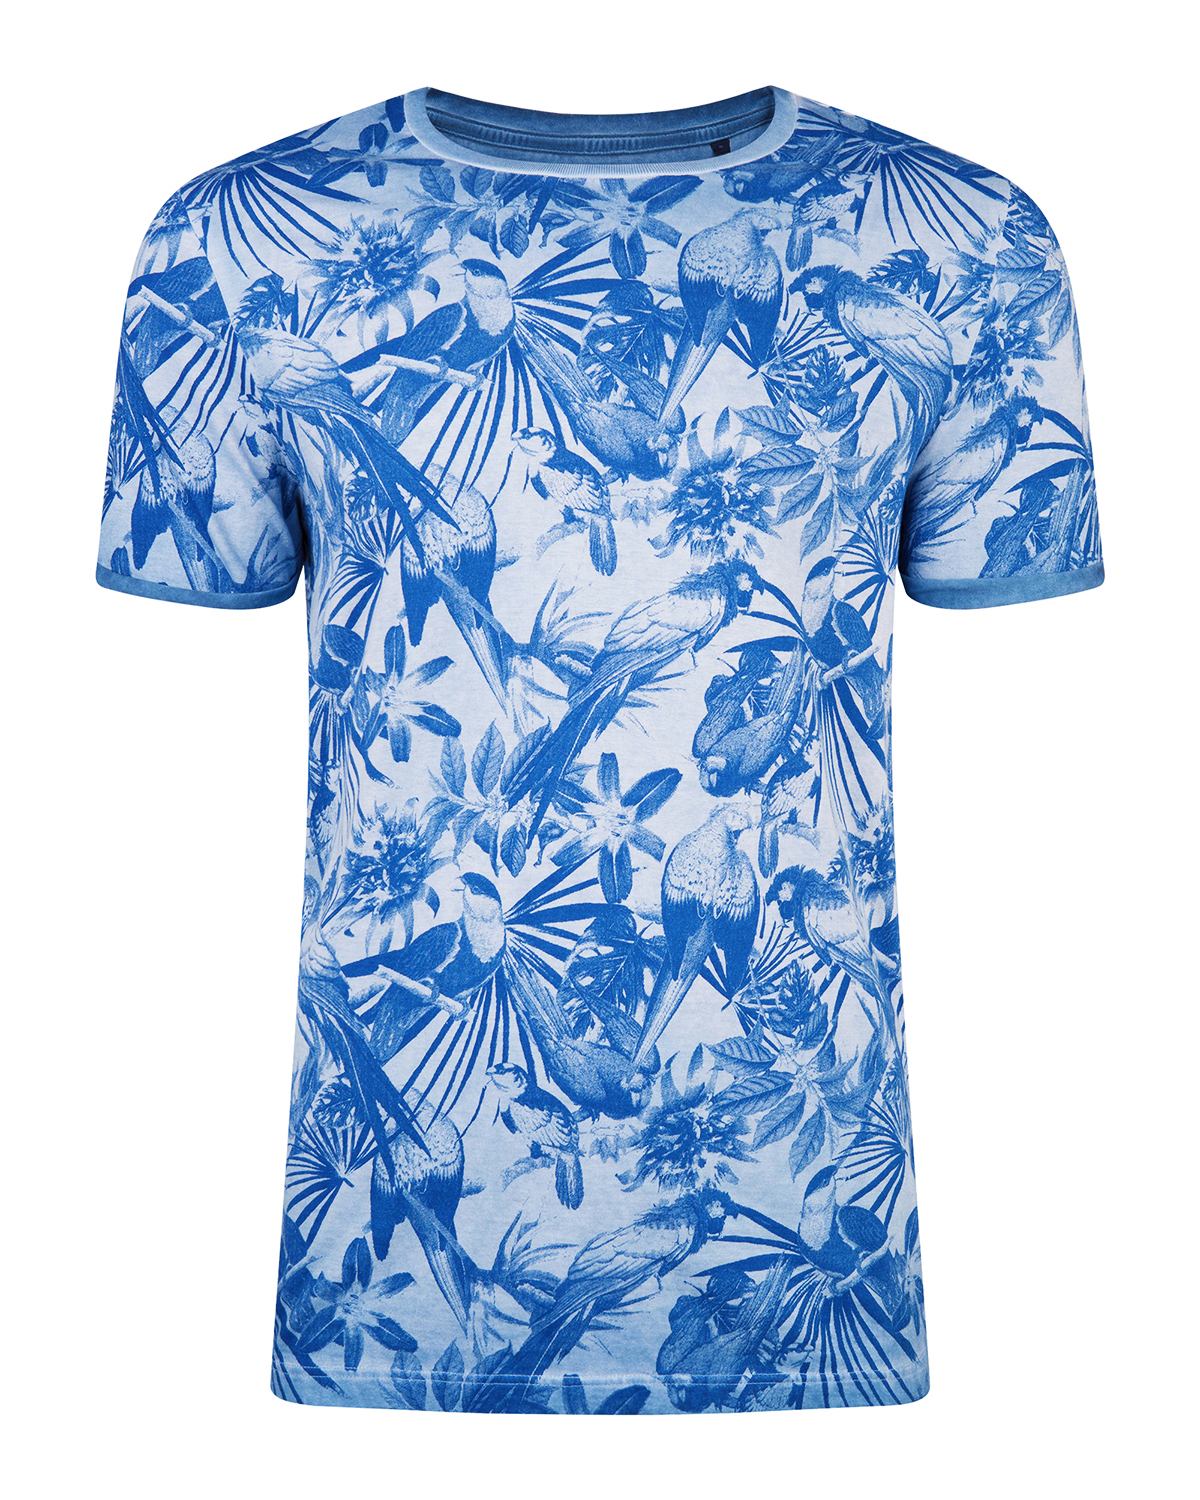 T-SHIRT À FLEURS HOMME   80086079 - WE Fashion dfd770f6e7f0